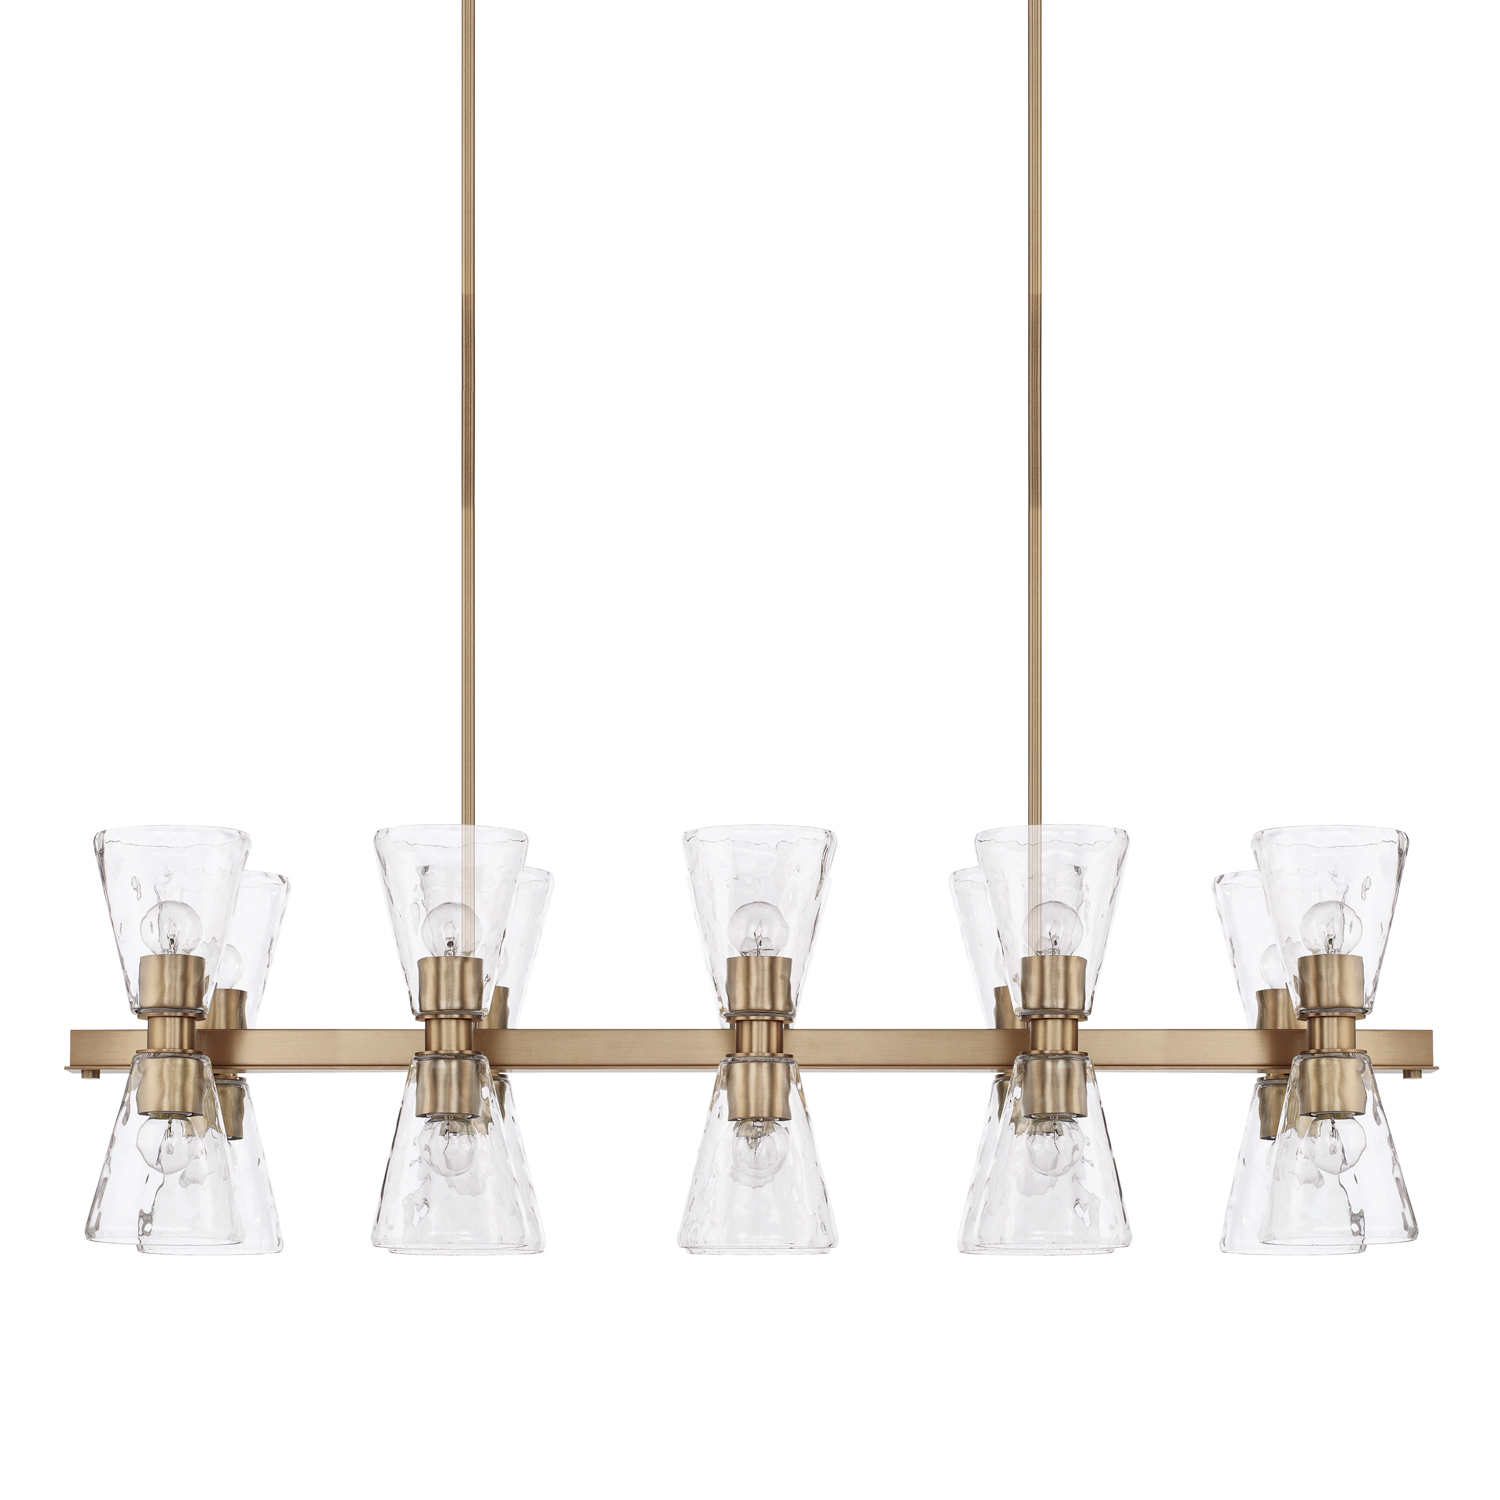 20 Light Island Chandelier from the Lyra collection by Capital Lighting 827501AD 456